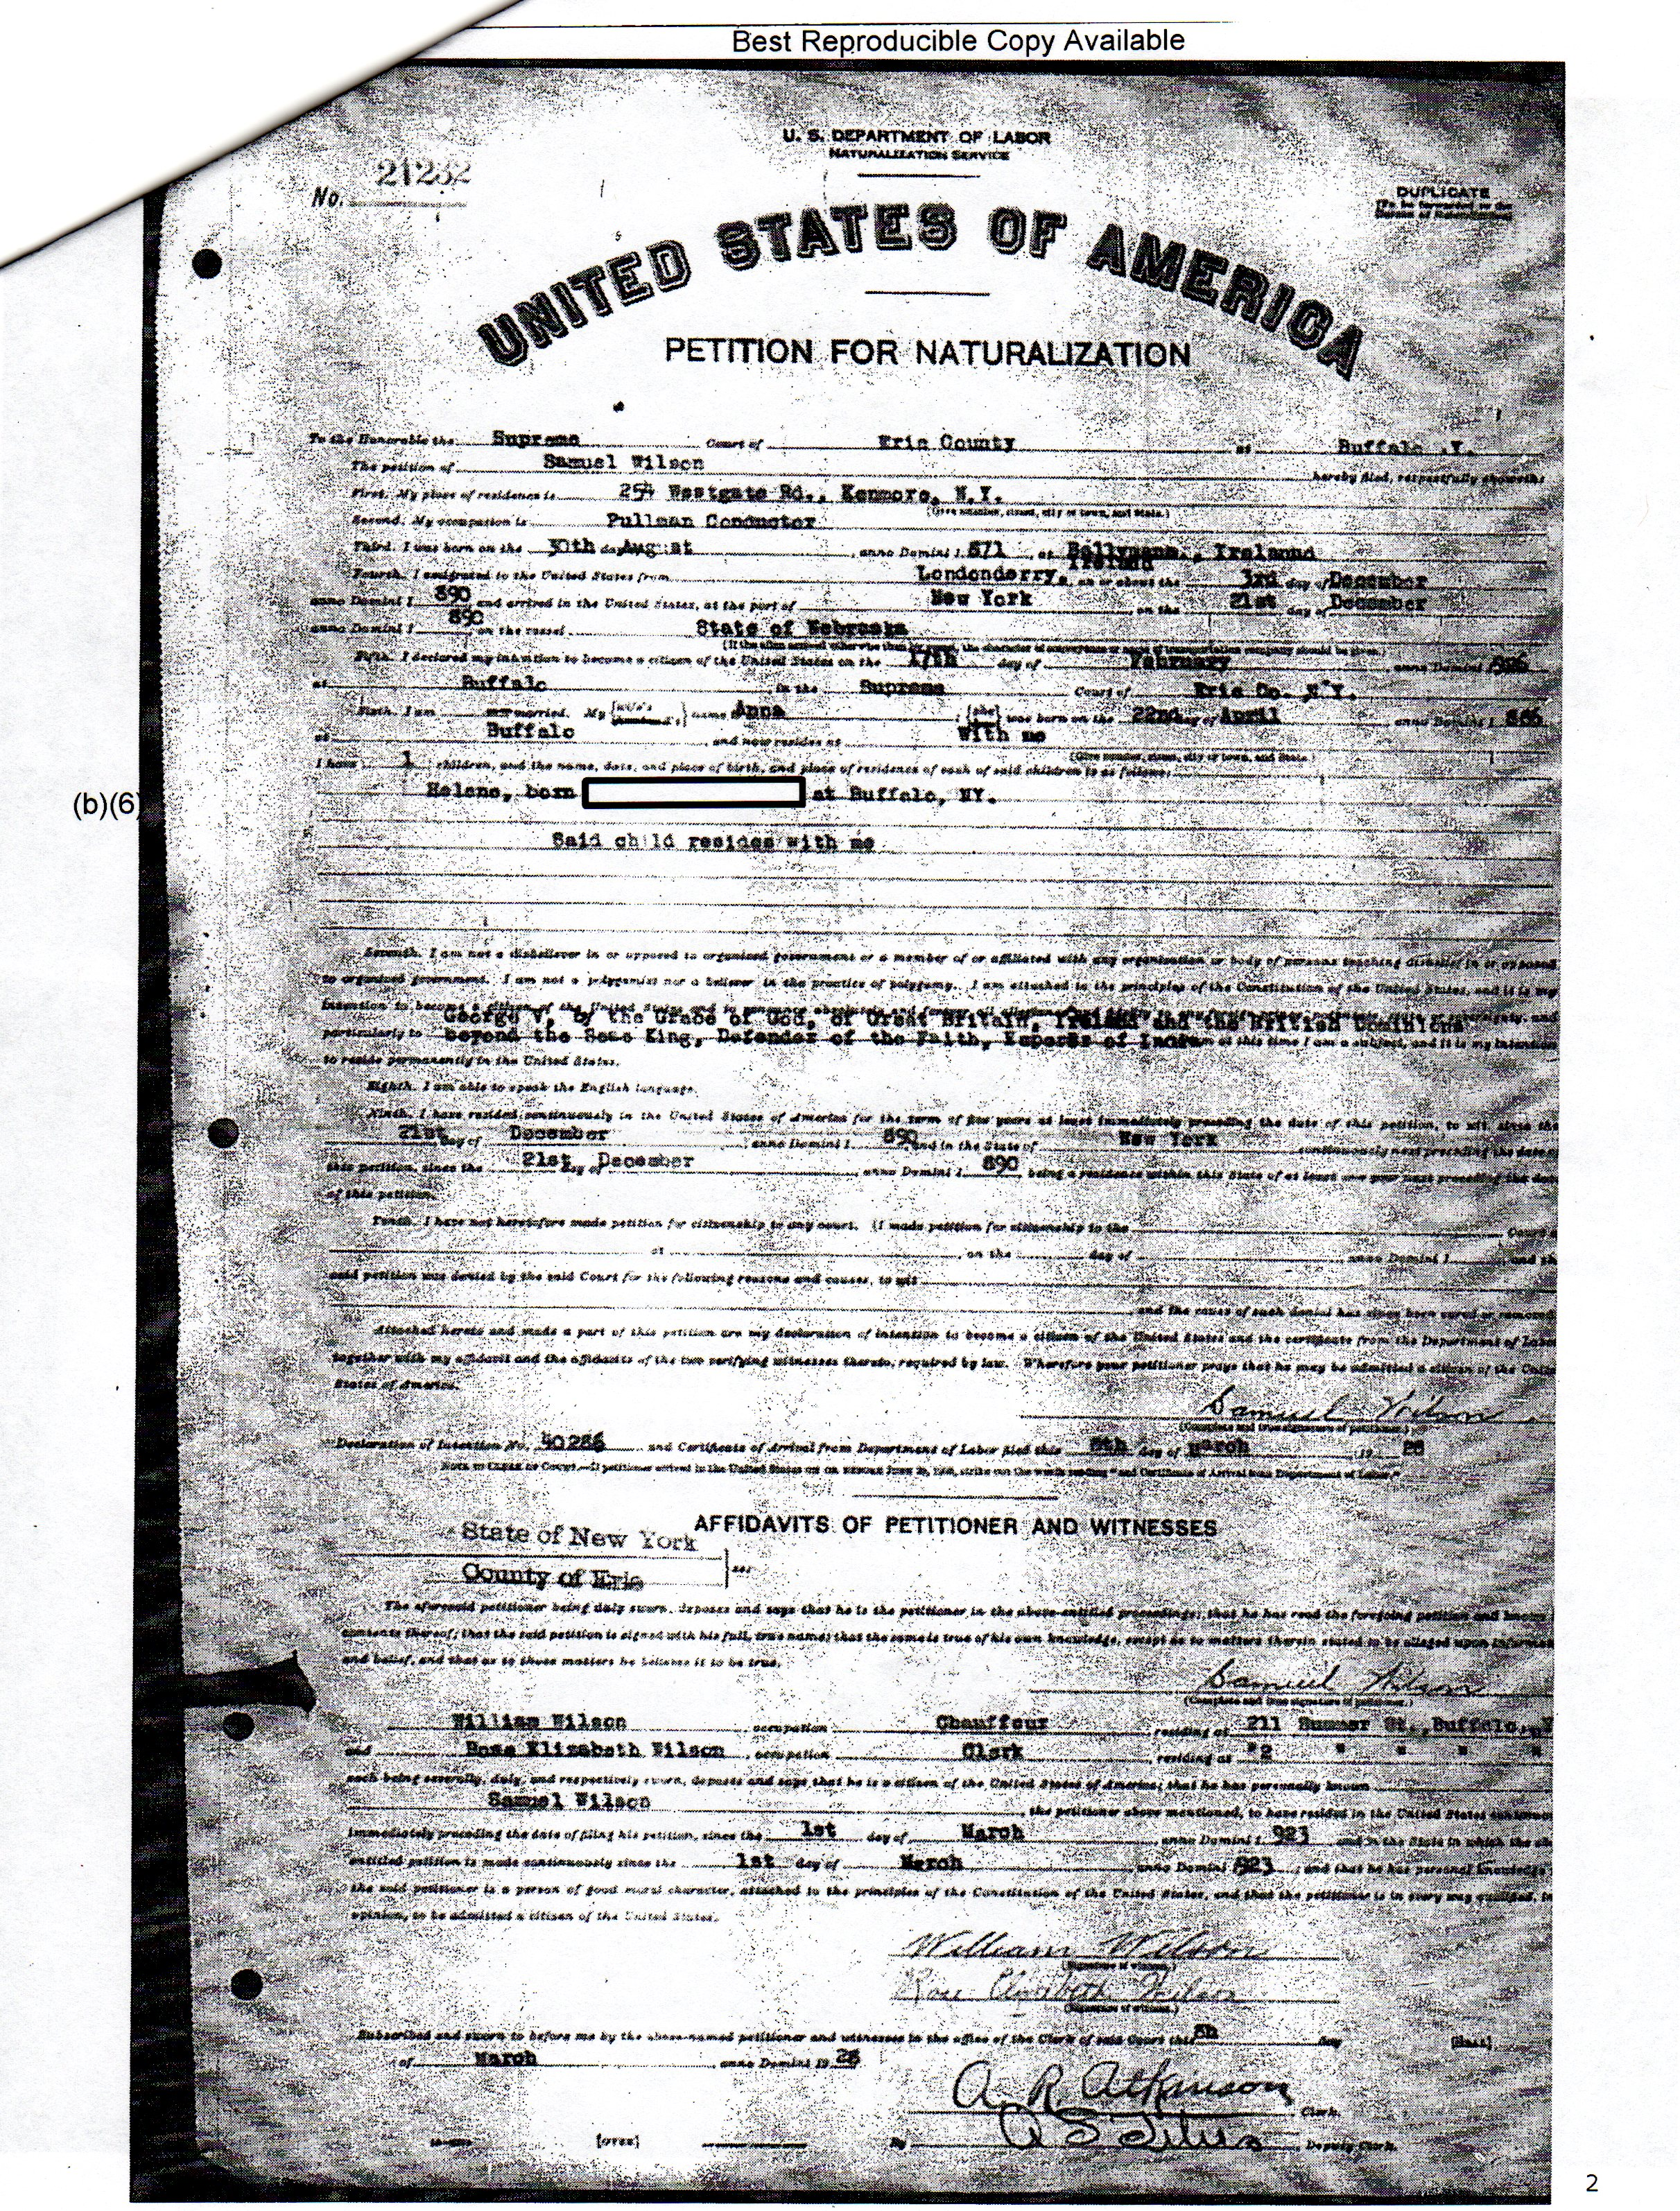 Naturalization genealogy and jure sanguinis the petition for naturalization lists william wilson and rose elizabeth wilson as witnesses brother cousin 1betcityfo Images